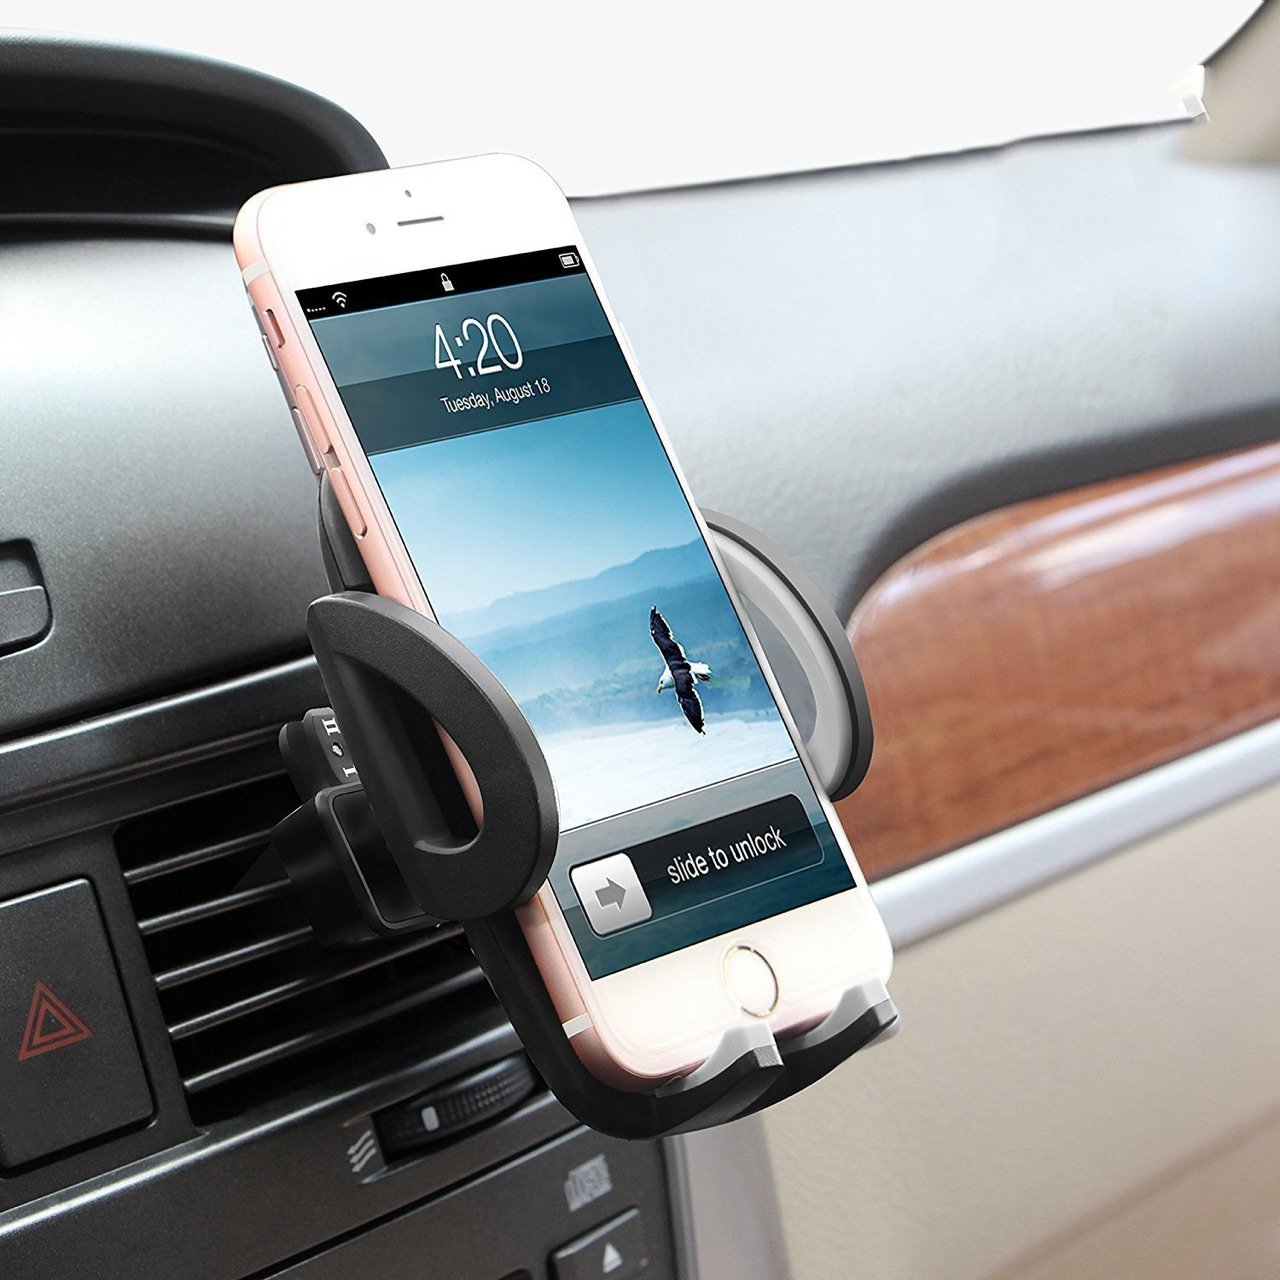 Beam Electronics Universal Smartphone Car Air Vent Mount Holder Cradle Compatible with iPhone X 8 8 Plus 7 7 Plus SE 6s 6 Plus 6 5s 5 4s 4 Samsung Galaxy S6 S5 S4 LG Nexus Sony Nokia and More… by Beam Electronics (Image #2)